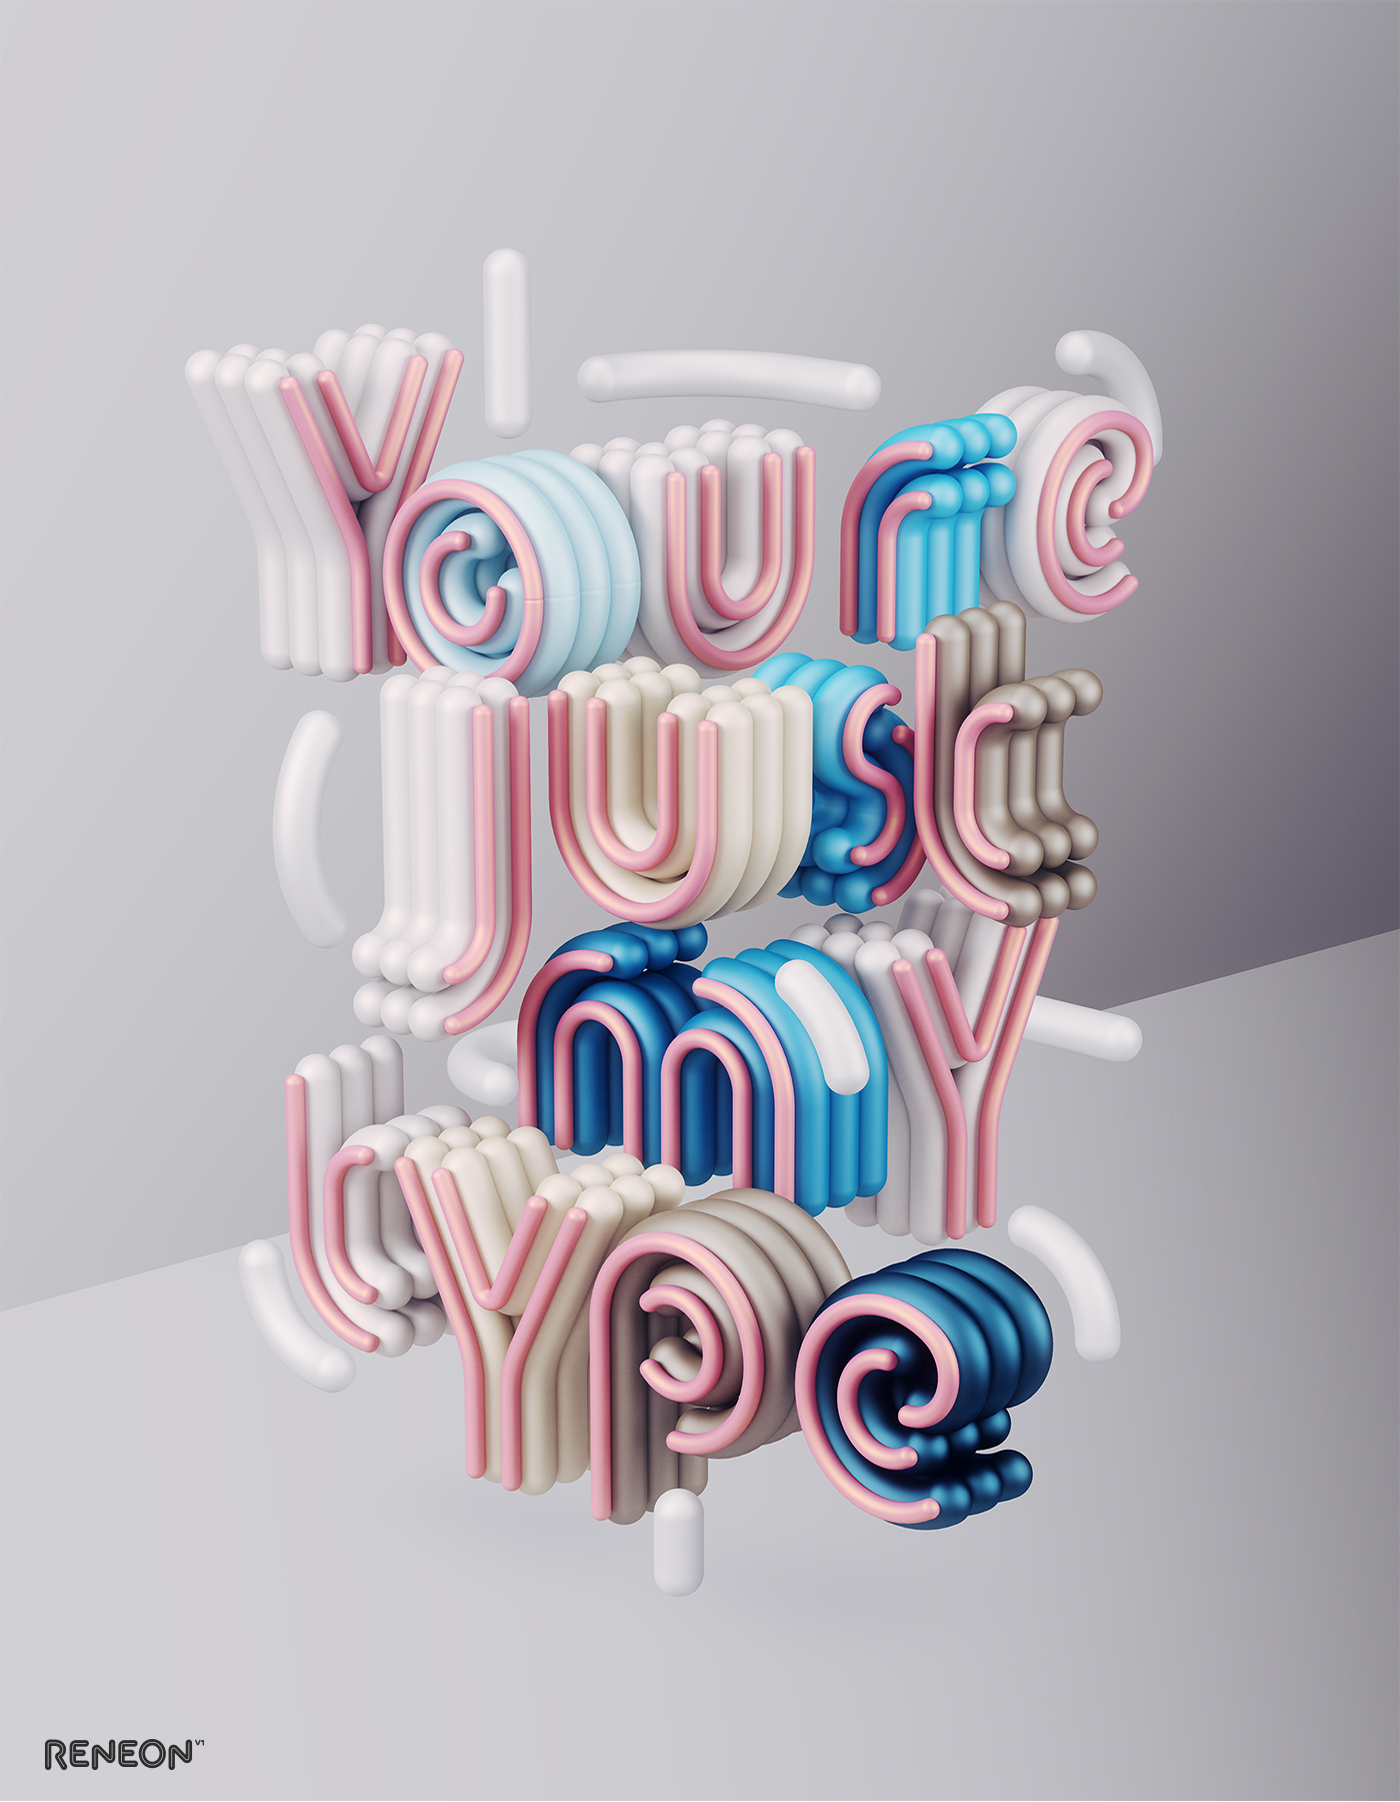 3d typography design reneon